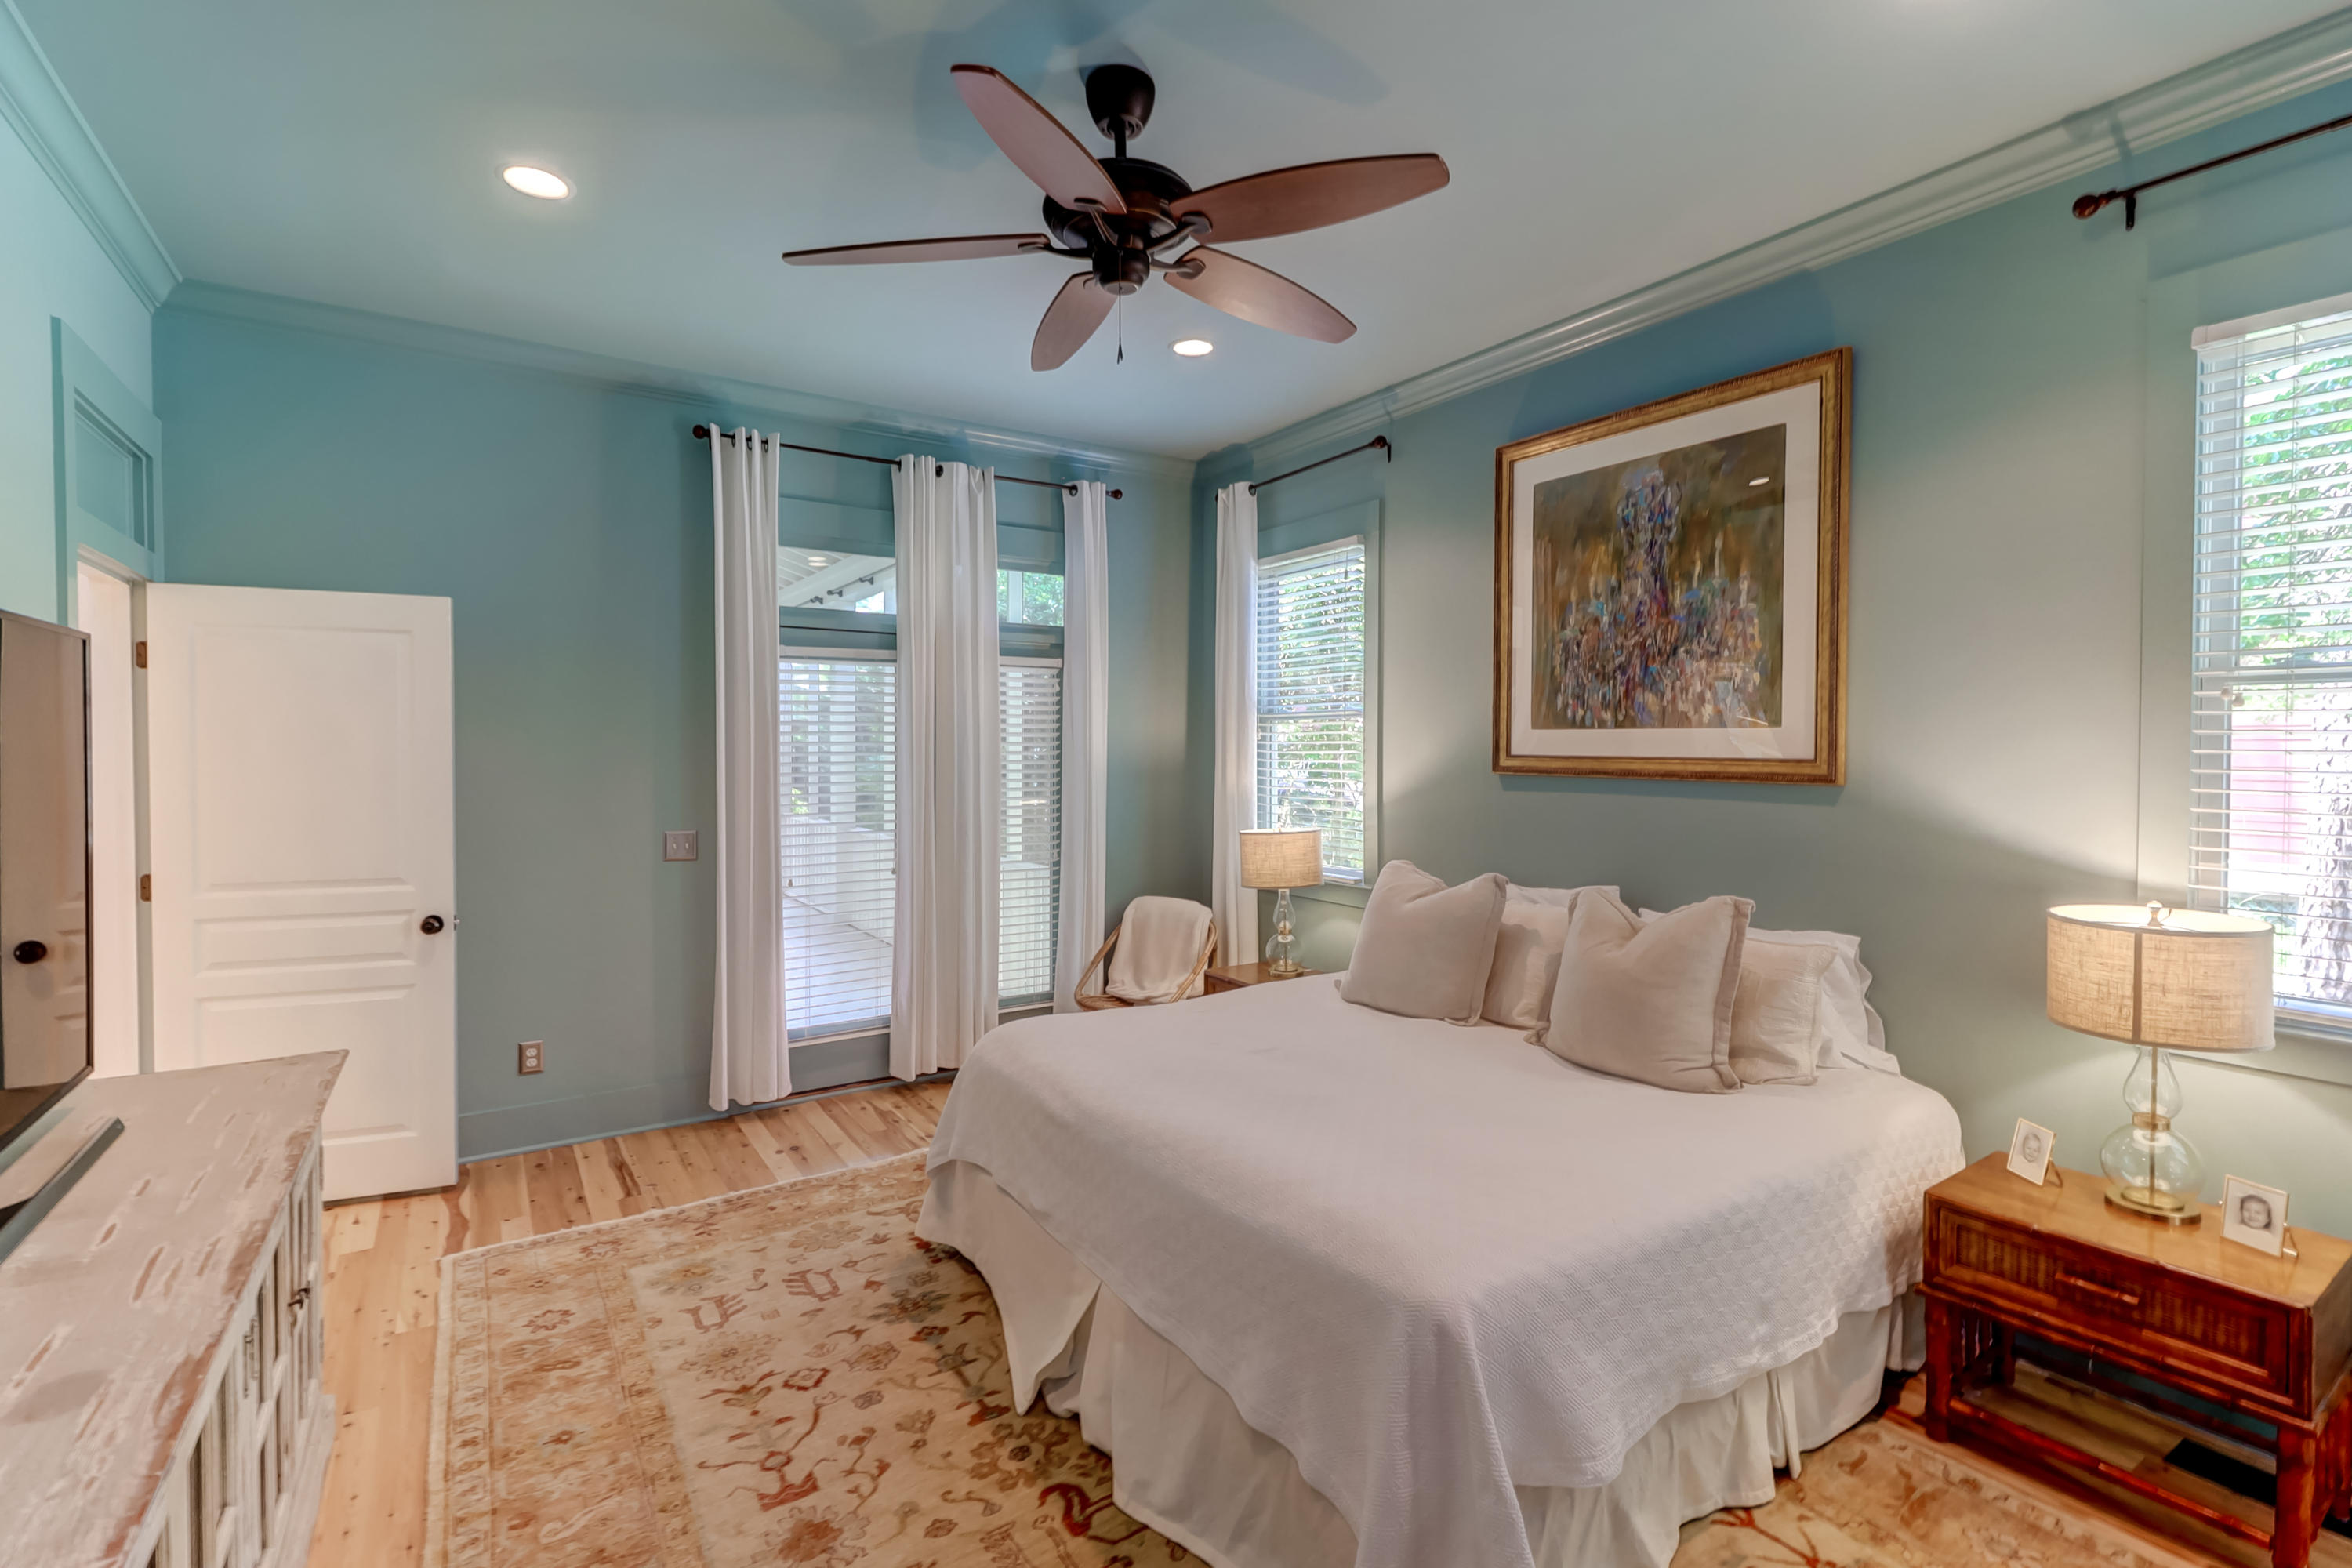 The Villages In St Johns Woods Homes For Sale - 5056 Coral Reef Dr, Johns Island, SC - 64